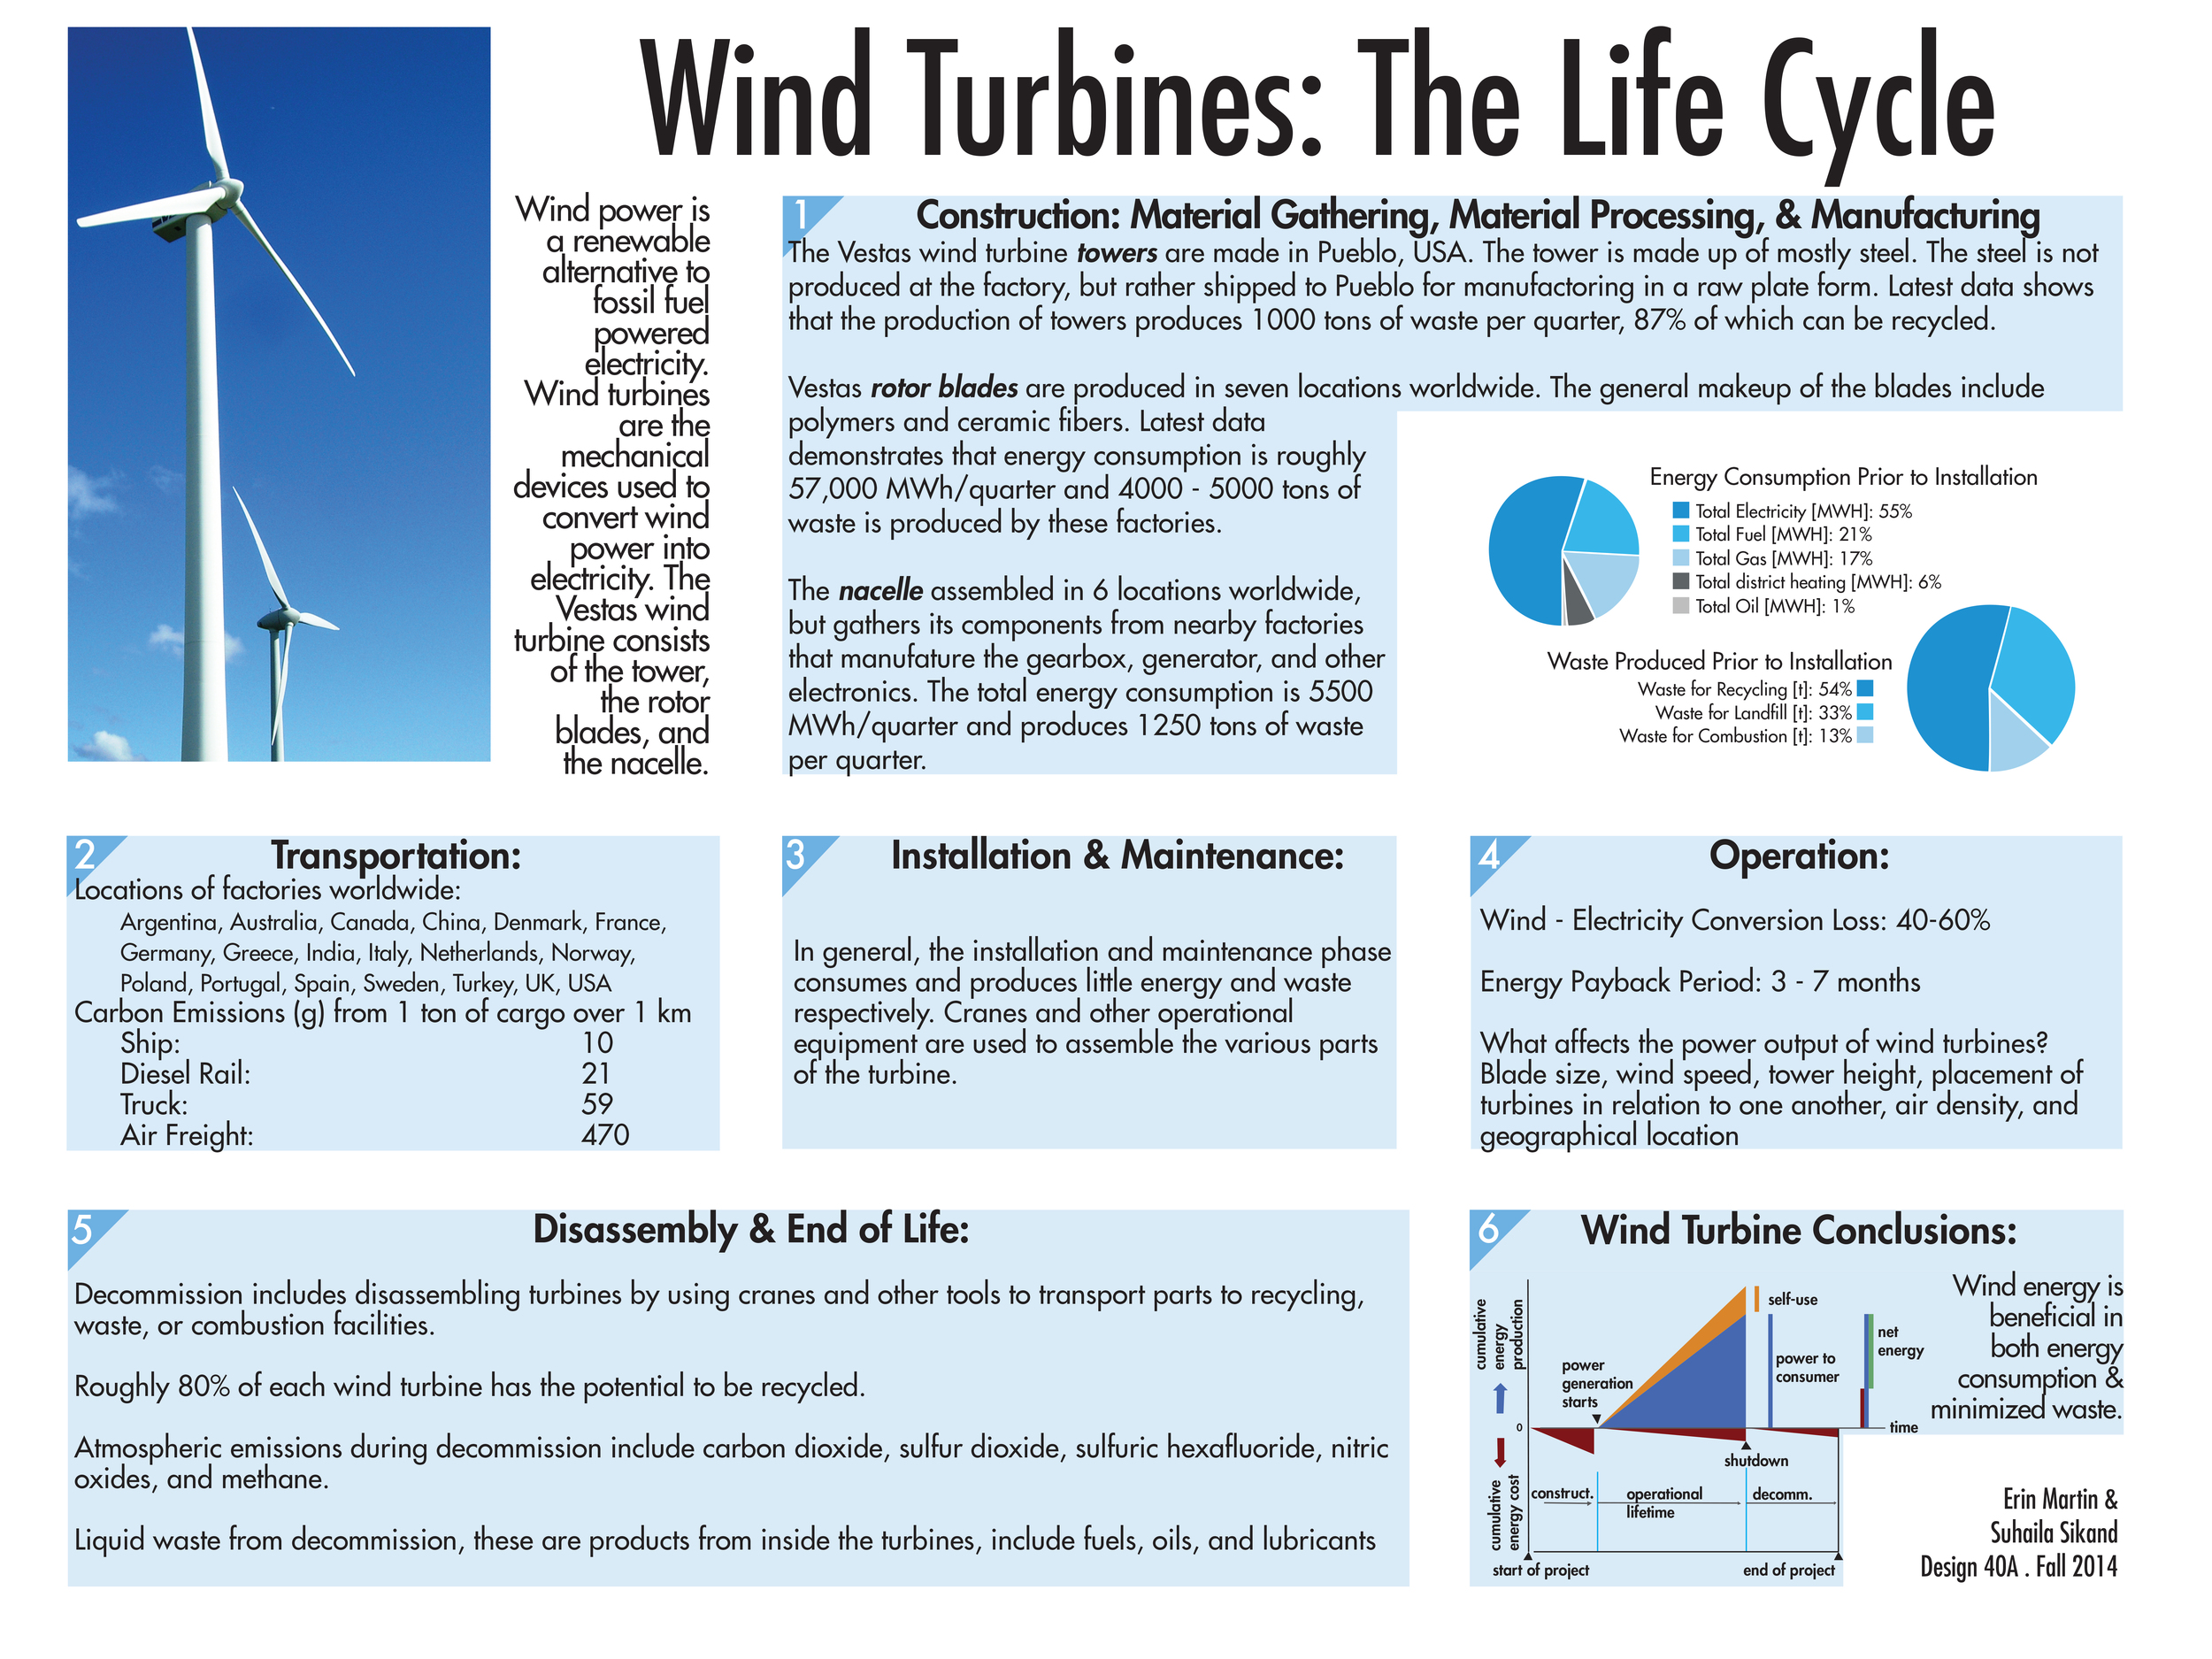 Wind Turbine Life Cycle